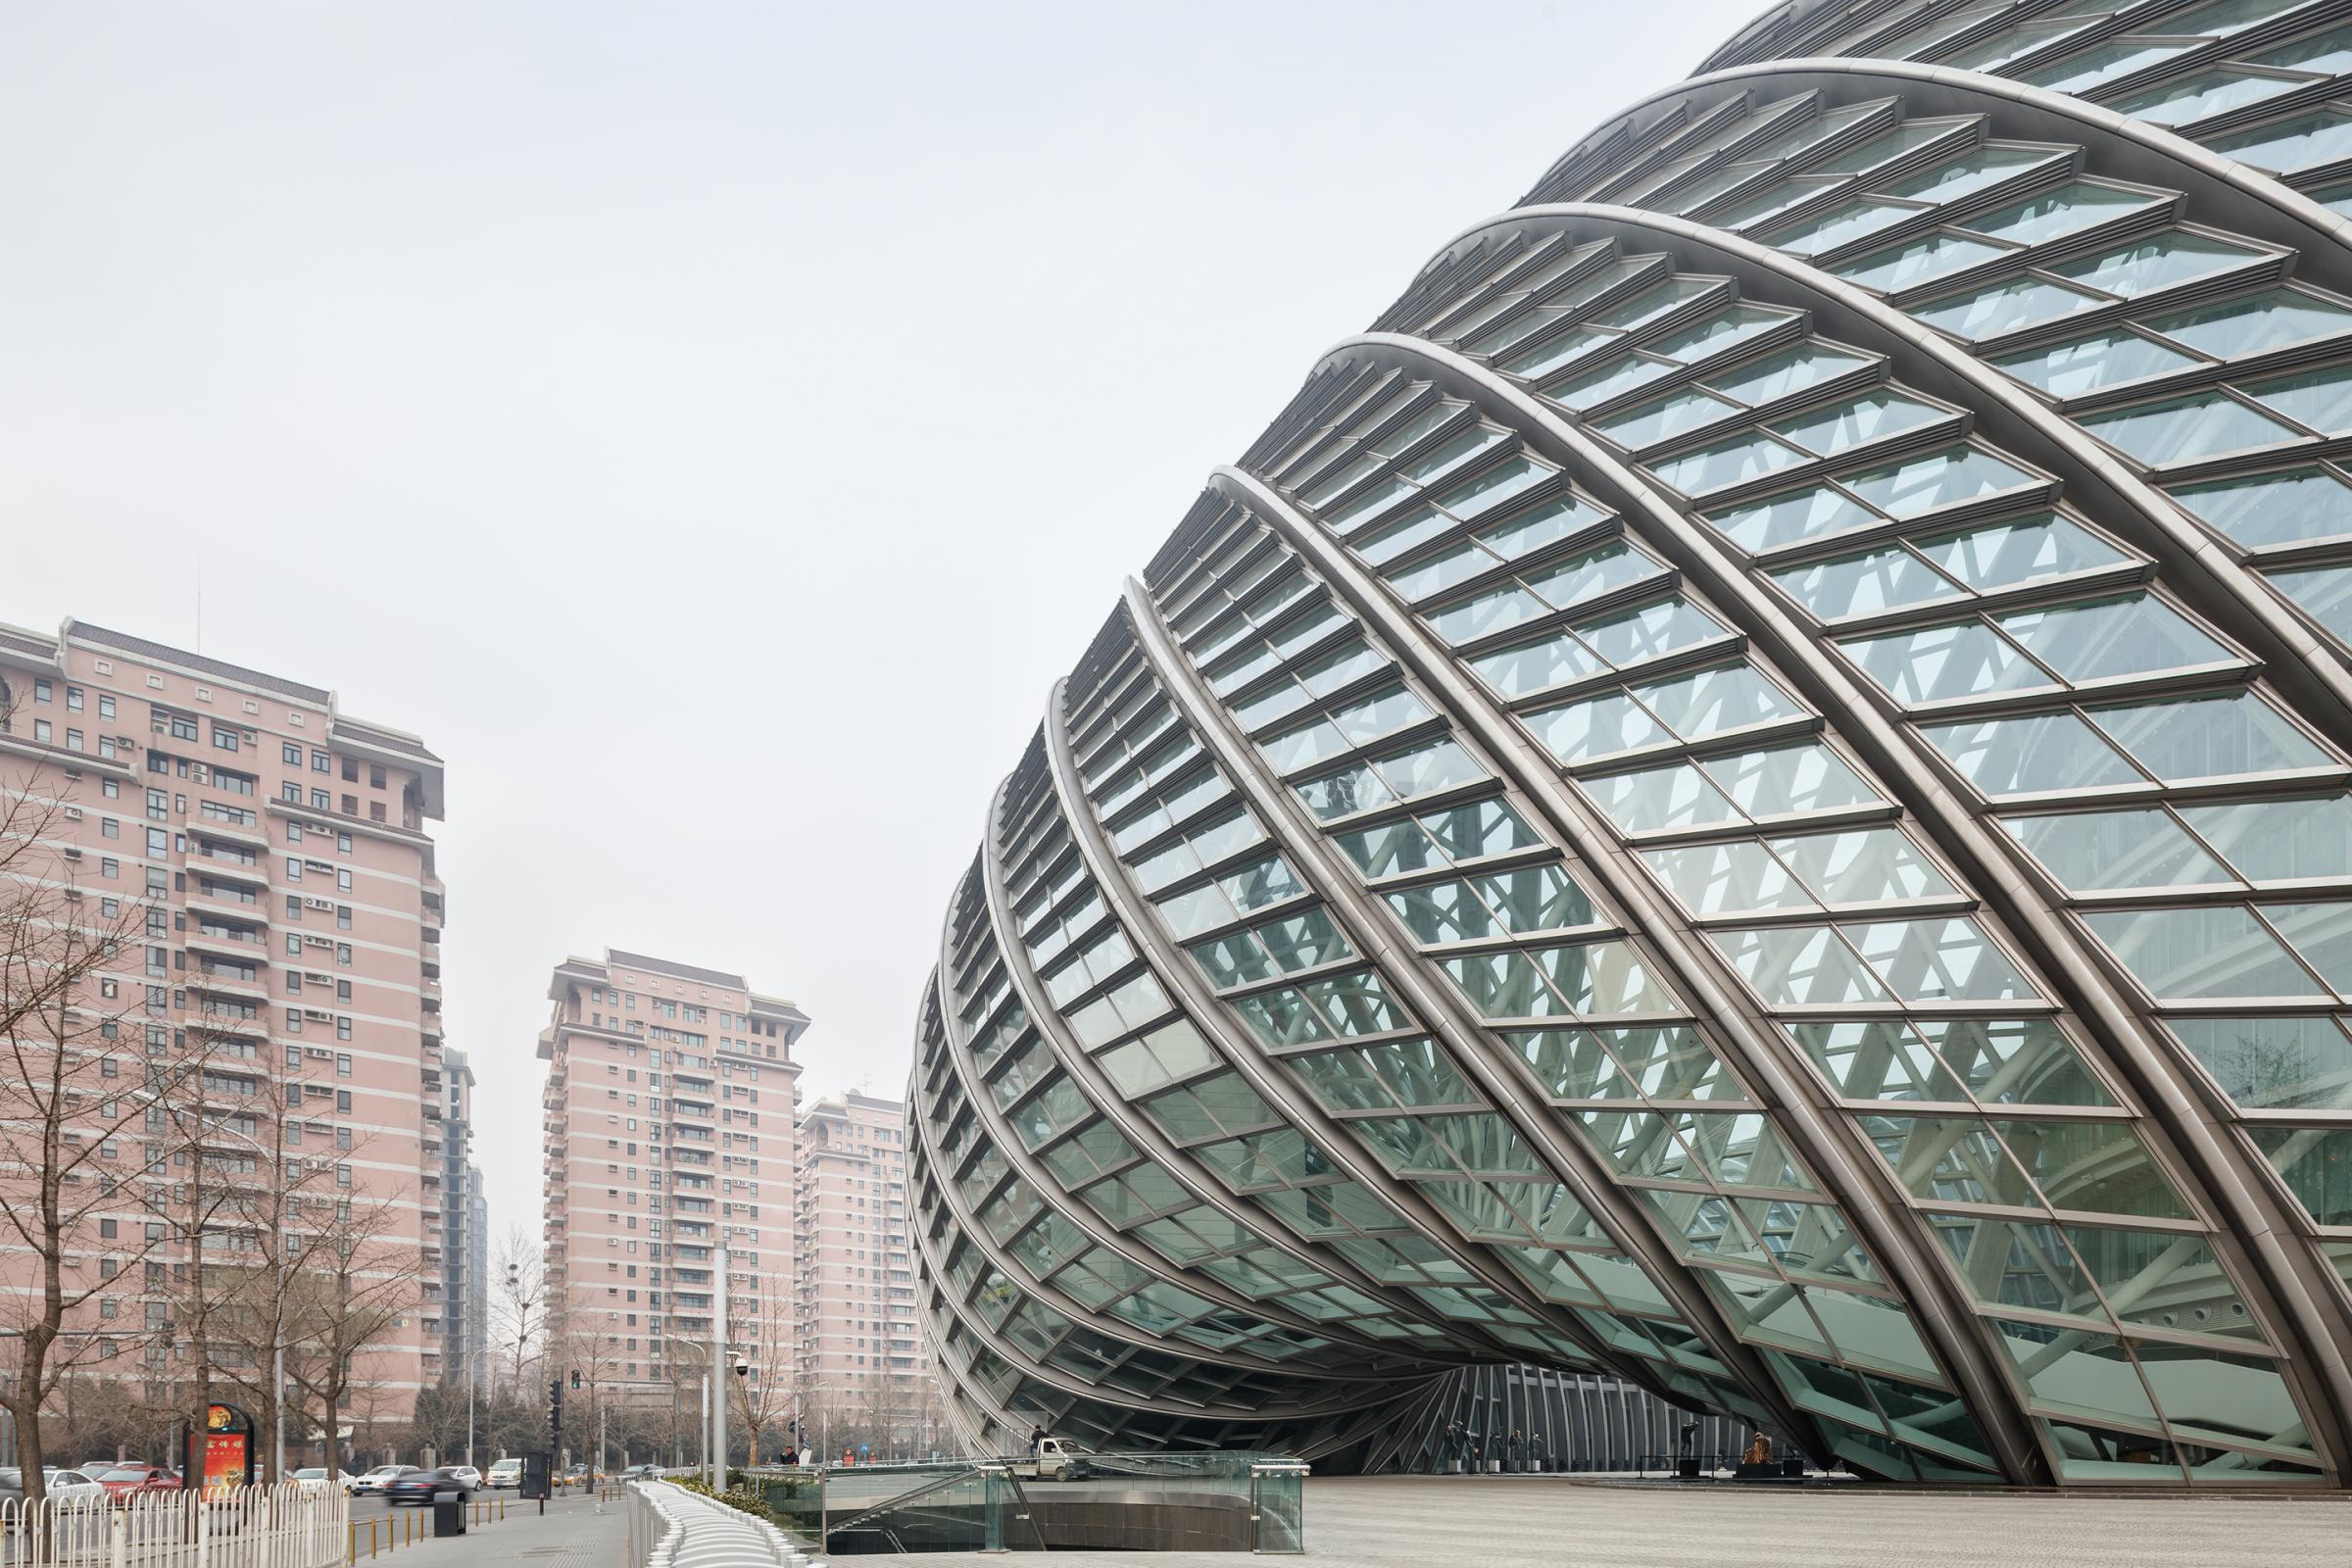 Photograph of Phoenix International Media Center, designed by BIAD UFo and located in Beijing, China